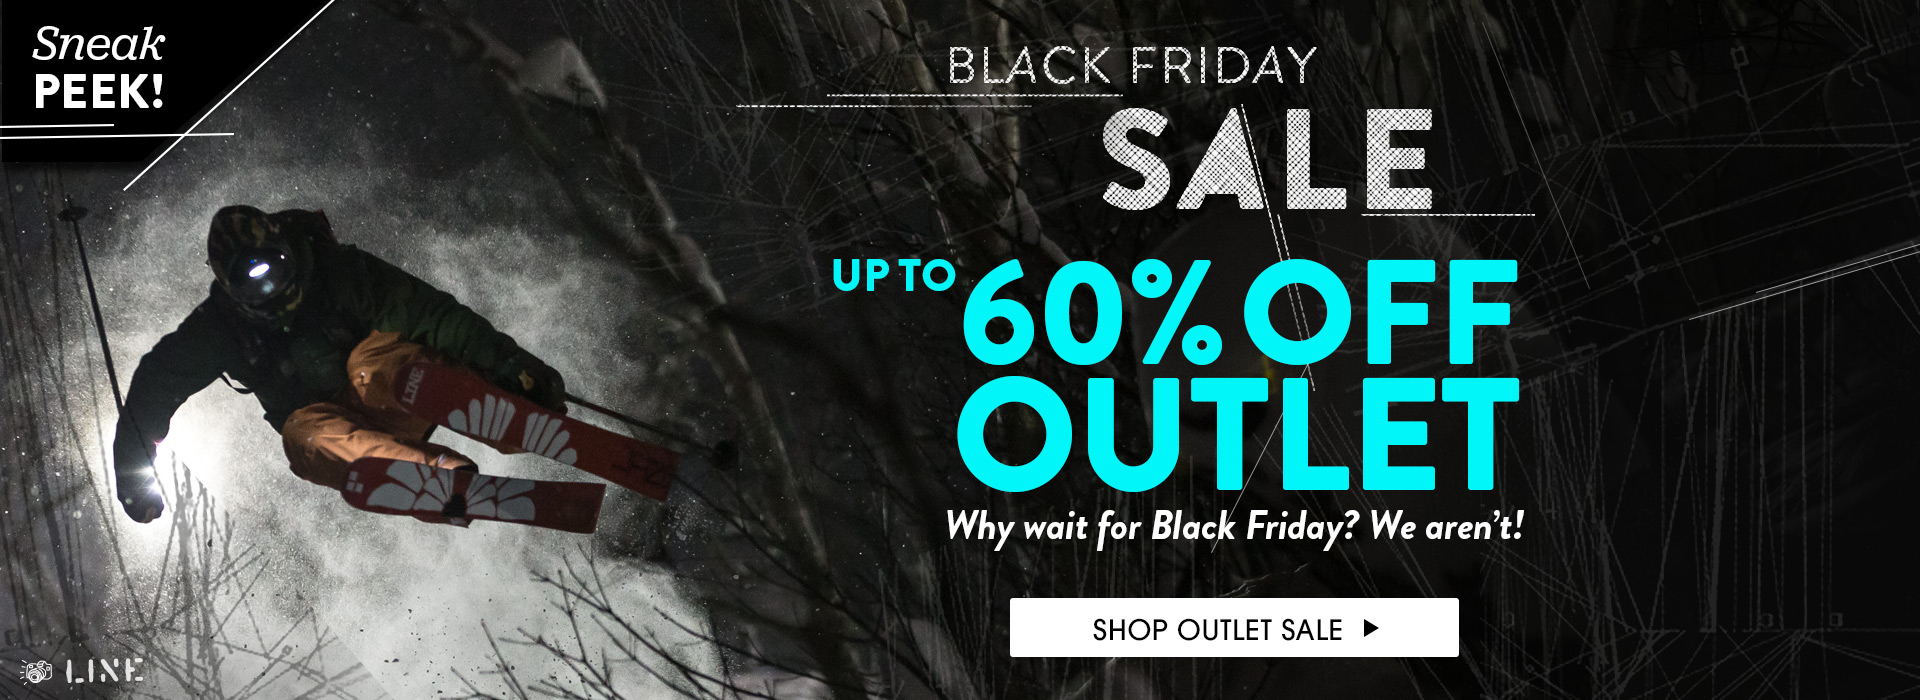 Black Friday Sneak Peek. Up to 60% Off. Shop Now!